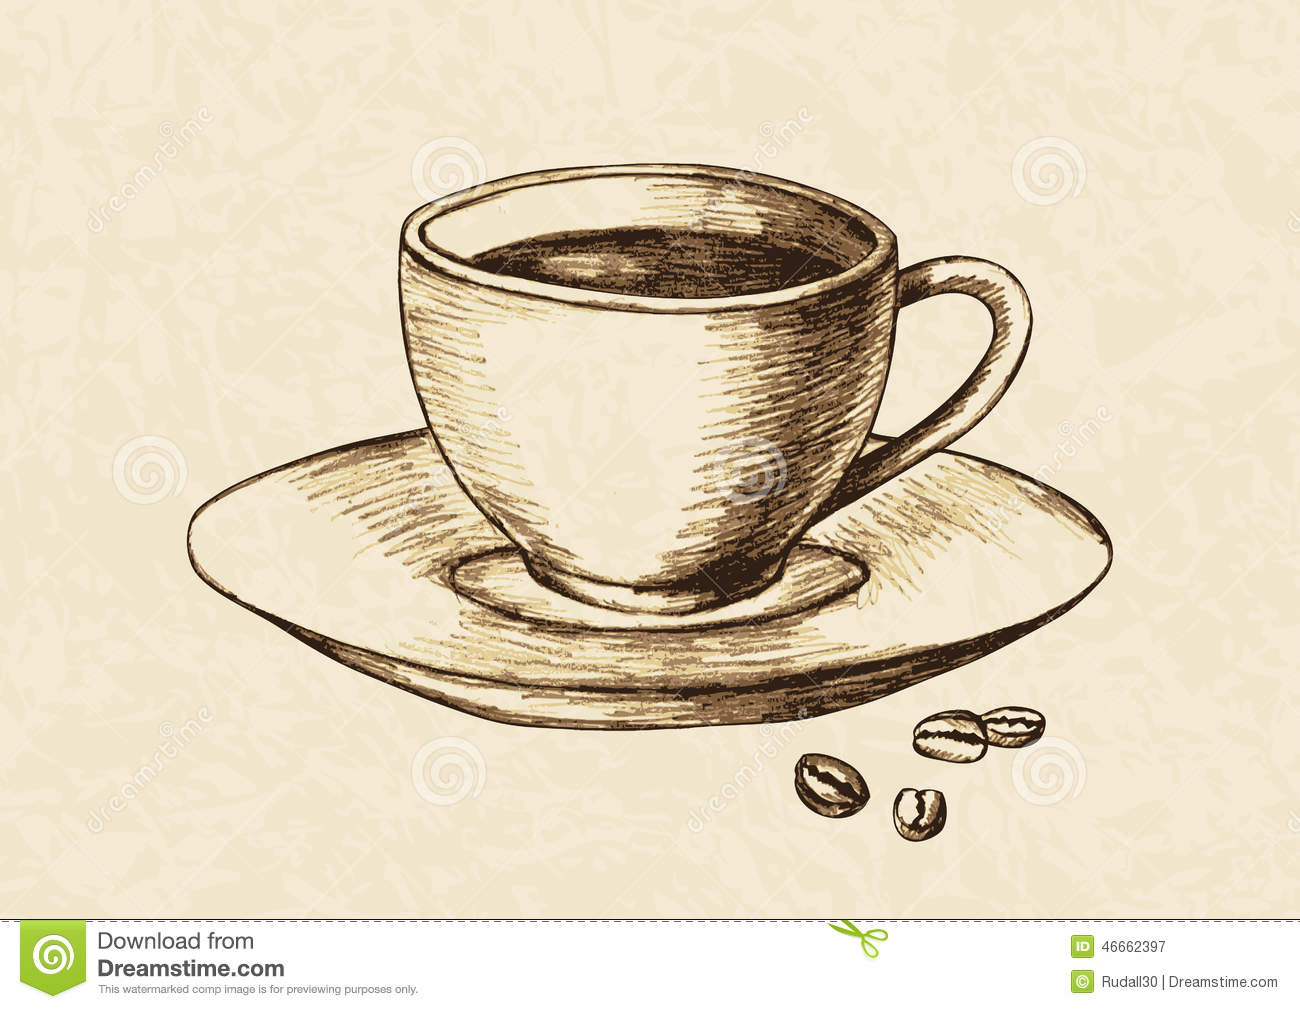 Sketch illustration of a cup of coffee and coffee beans.